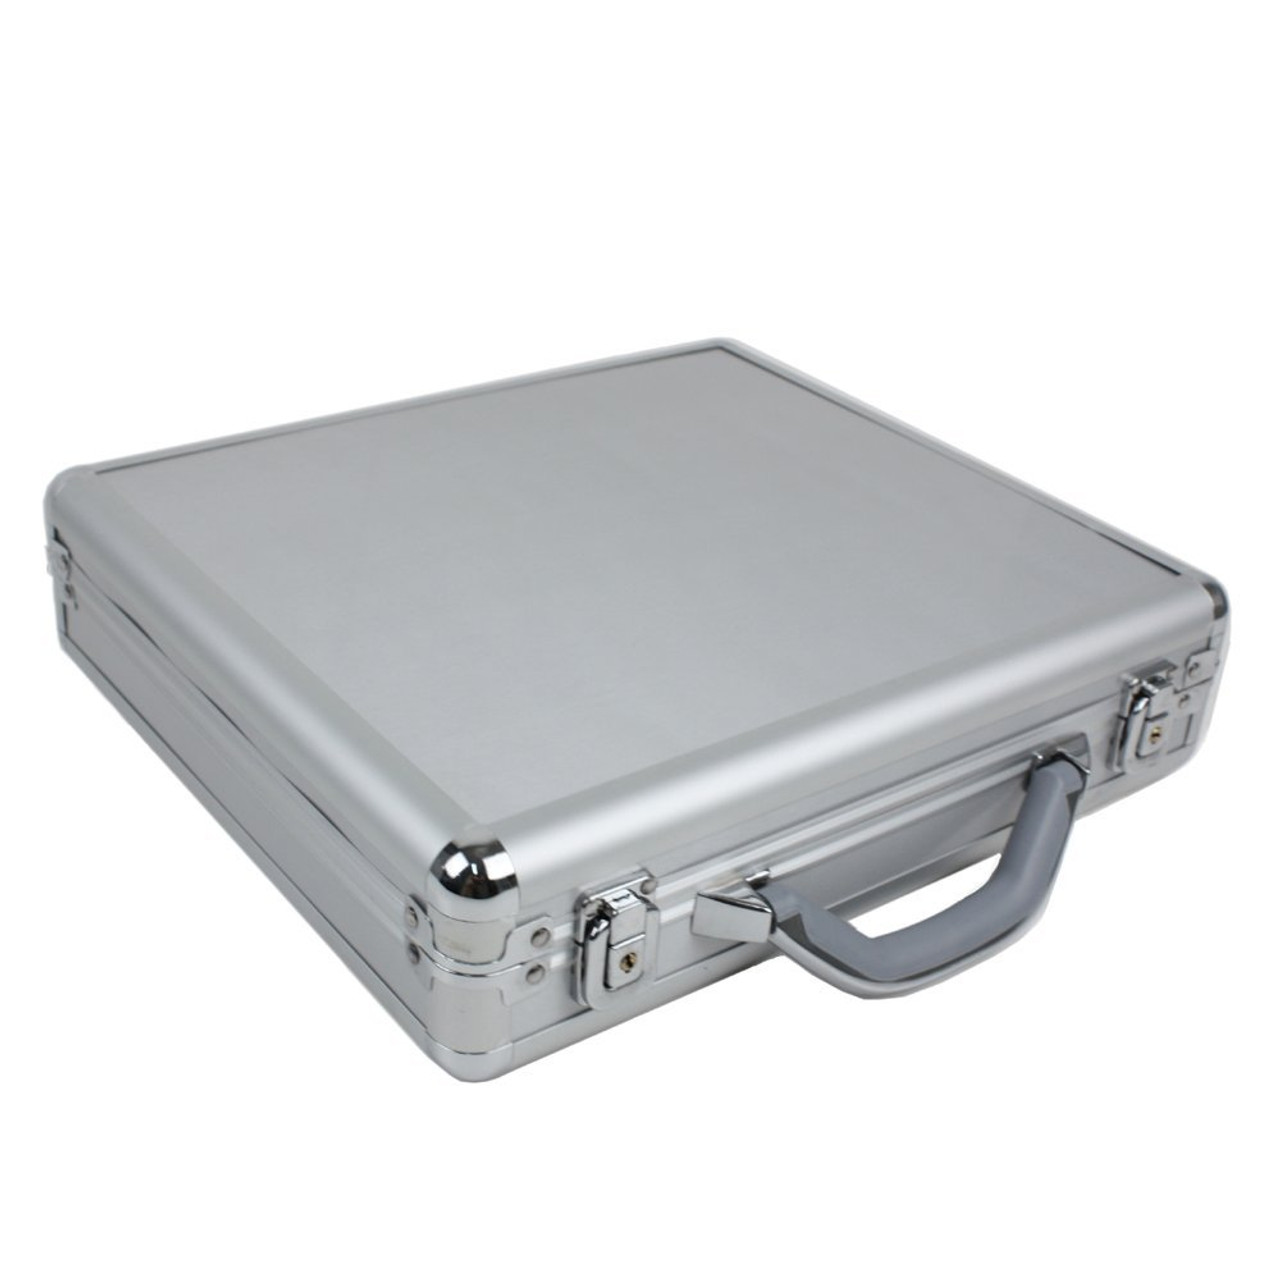 Watch Case for 18 Watches Collectors BriefCase Aluminum with Handle - Main